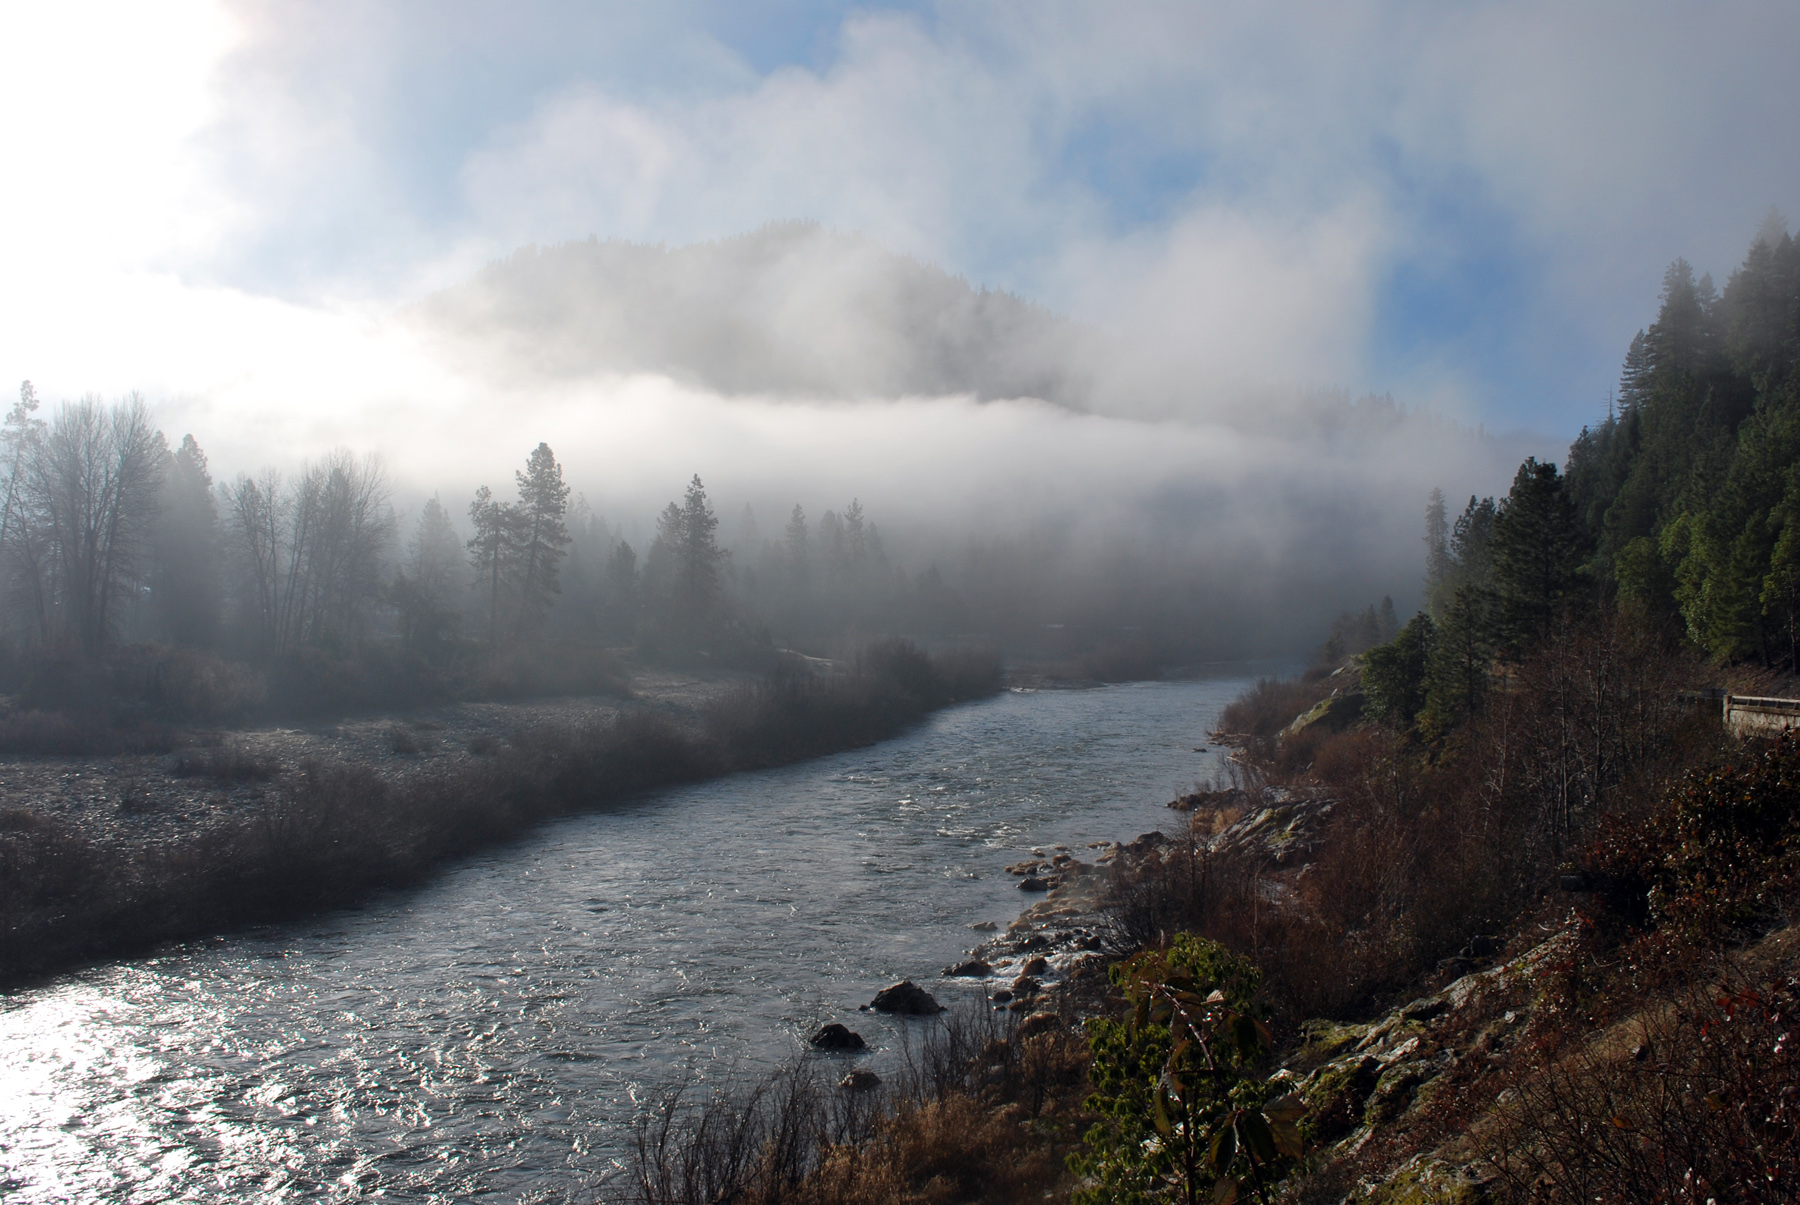 The Klamath River flows under a fog bank